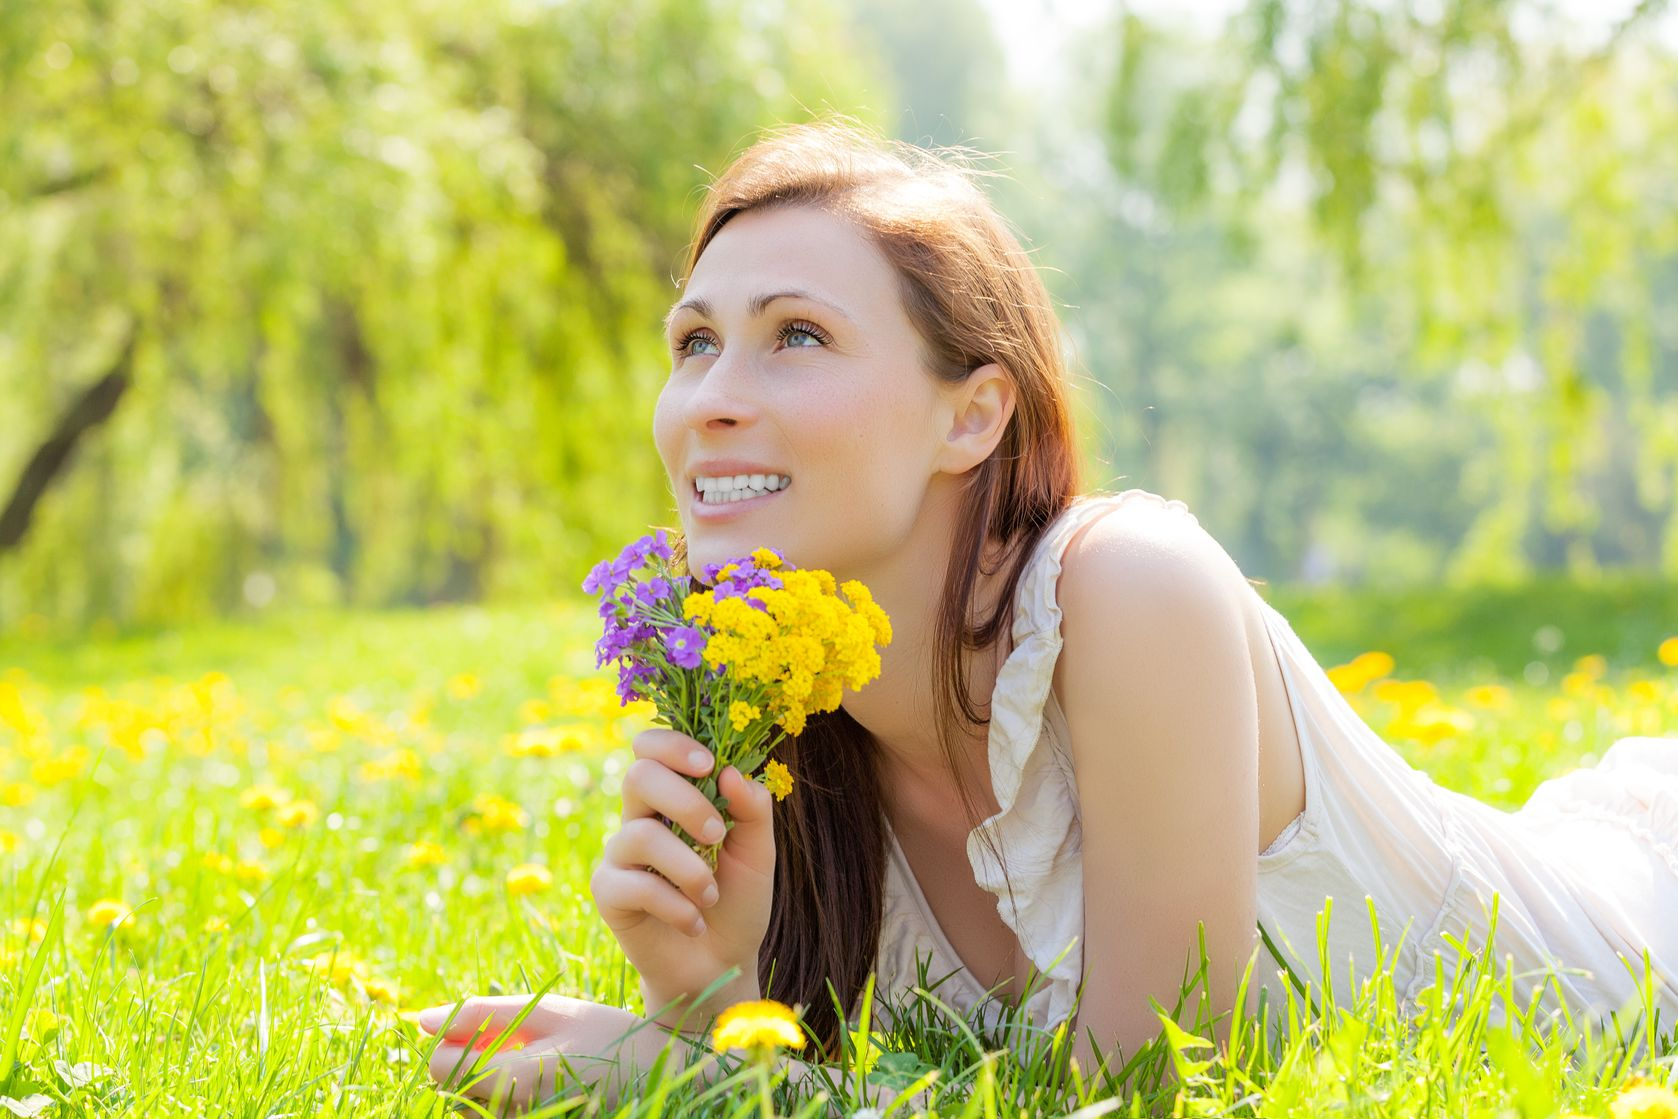 Girl_with_flowers_on_grass